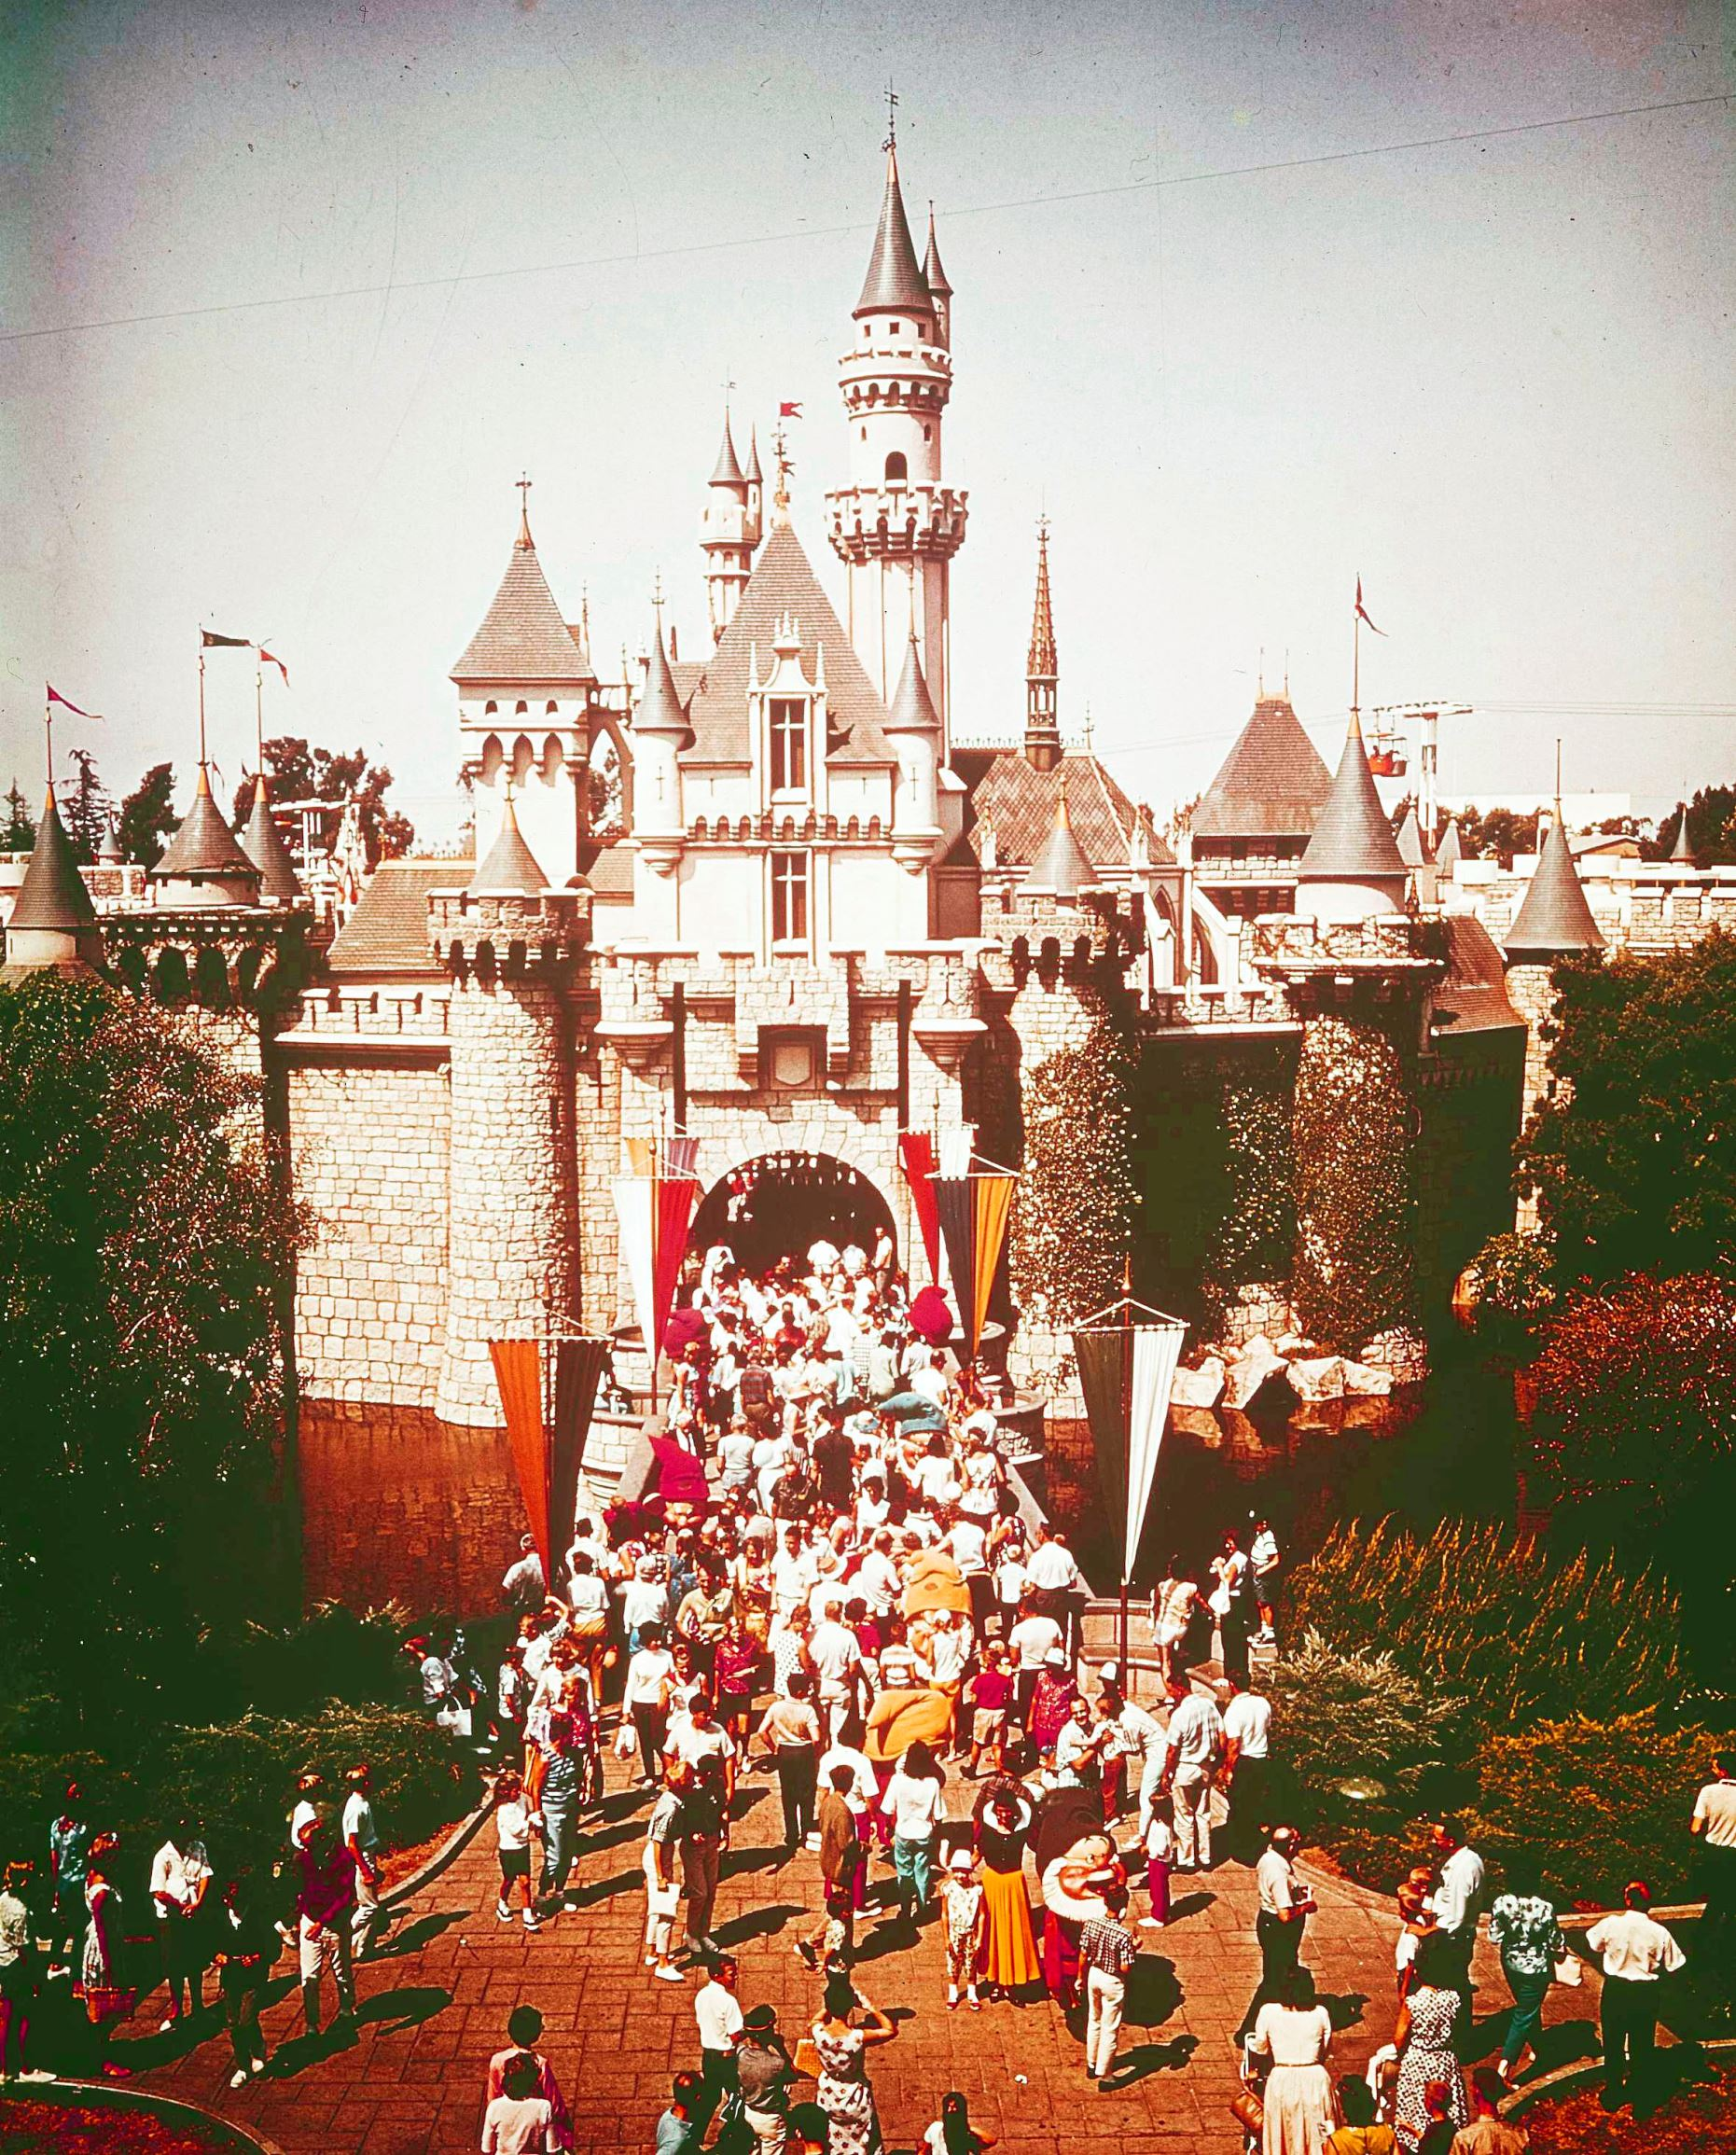 Slide 25 of 33: Visitors enter the Sleeping Beauty Castle of Fantasyland at Disneyland in Anaheim, Calif., Dec. 23, 1977. (AP Photo)